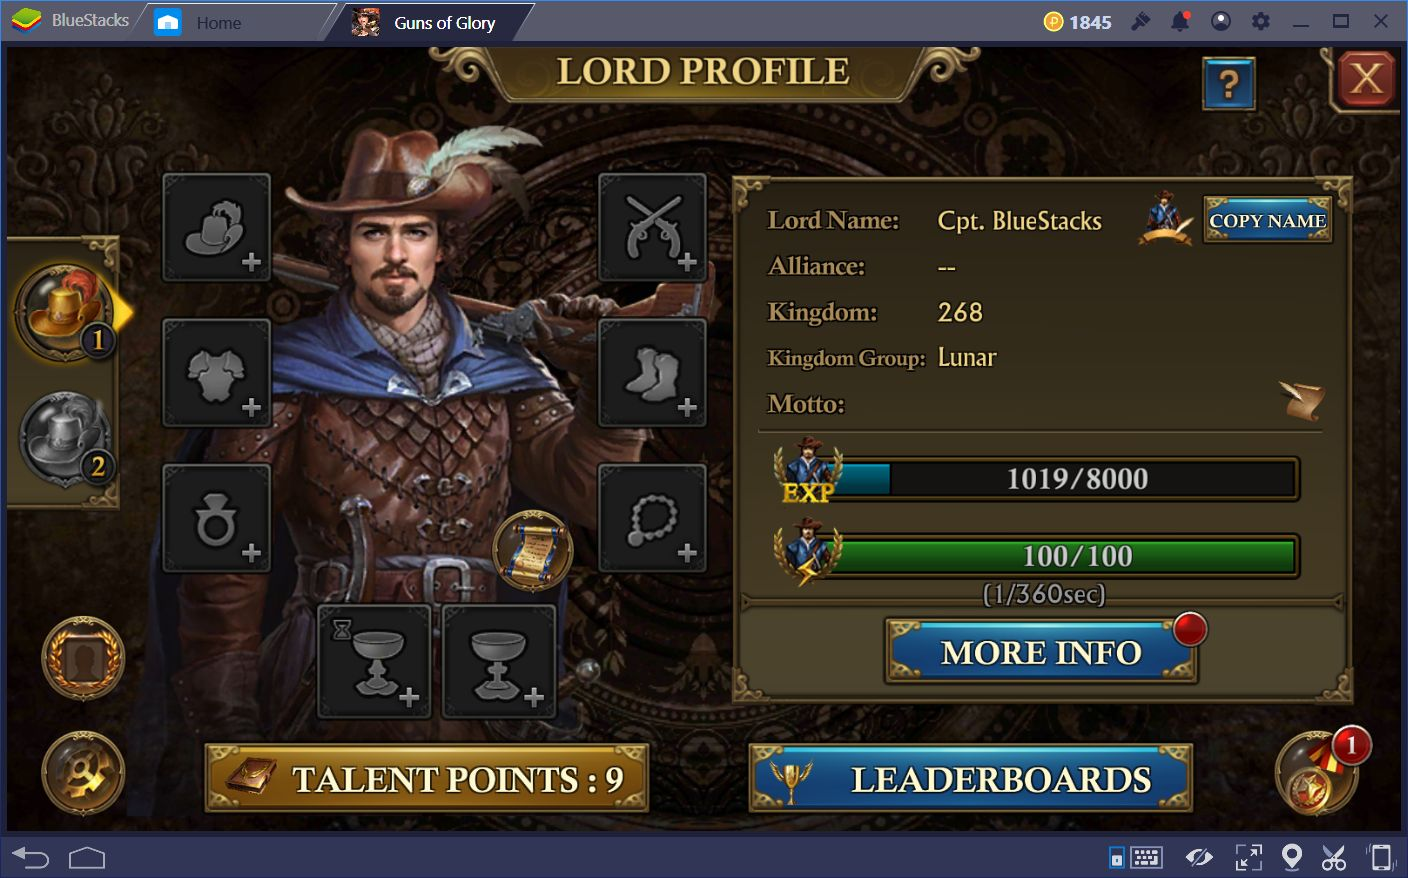 Tips to Improve Your Success In Guns of Glory | BlueStacks